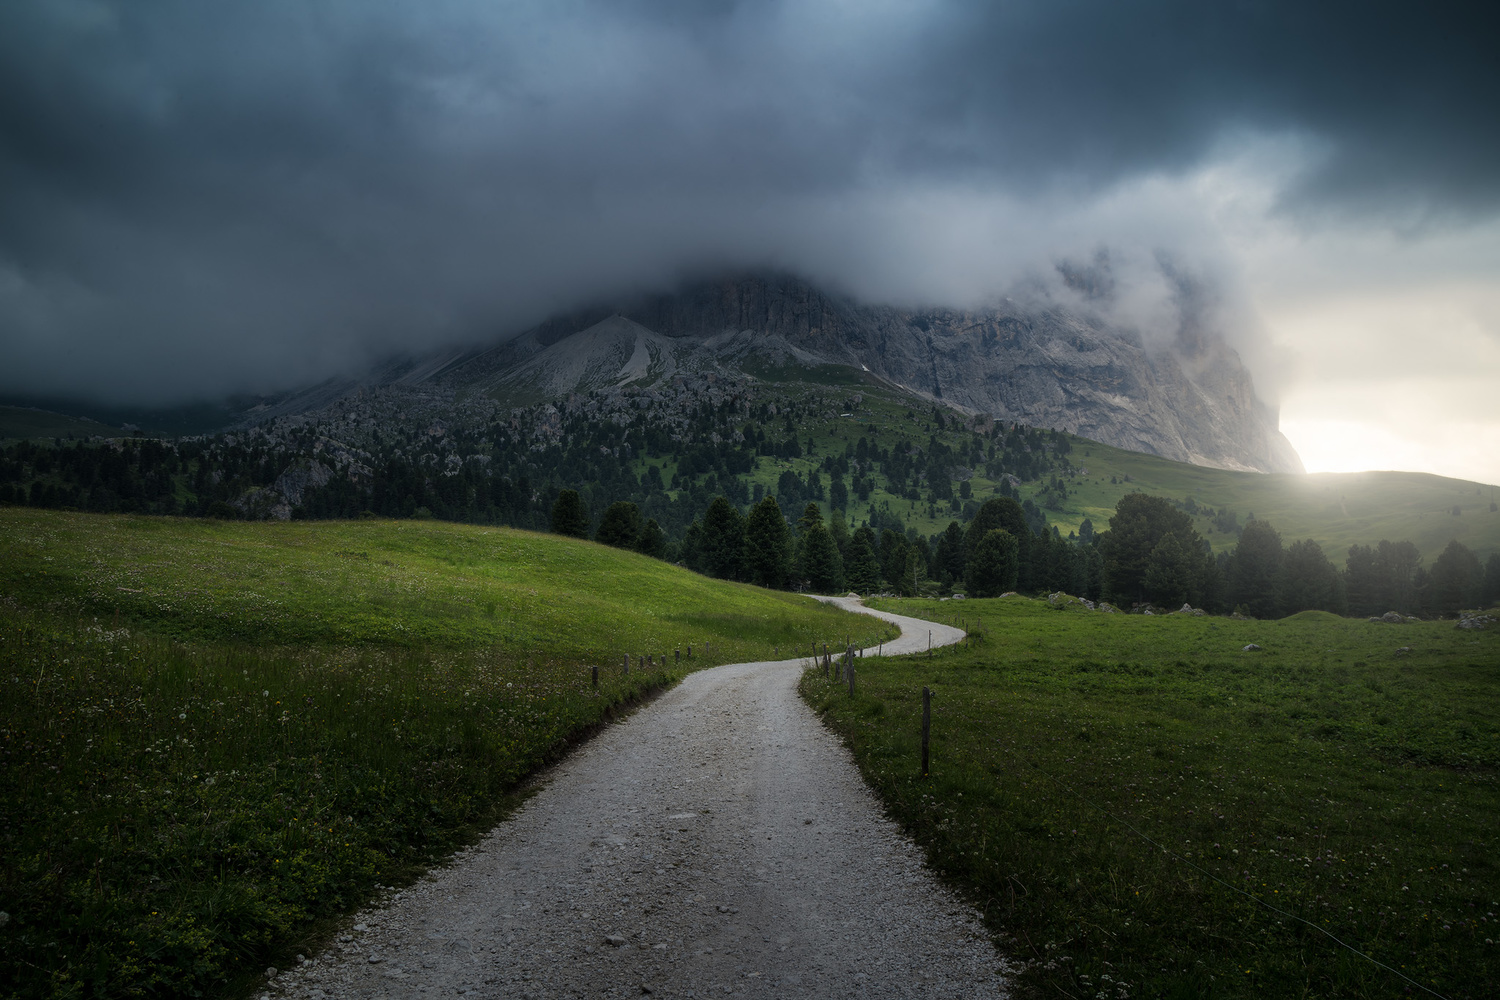 Stormy Dolomites by Christian Möhrle